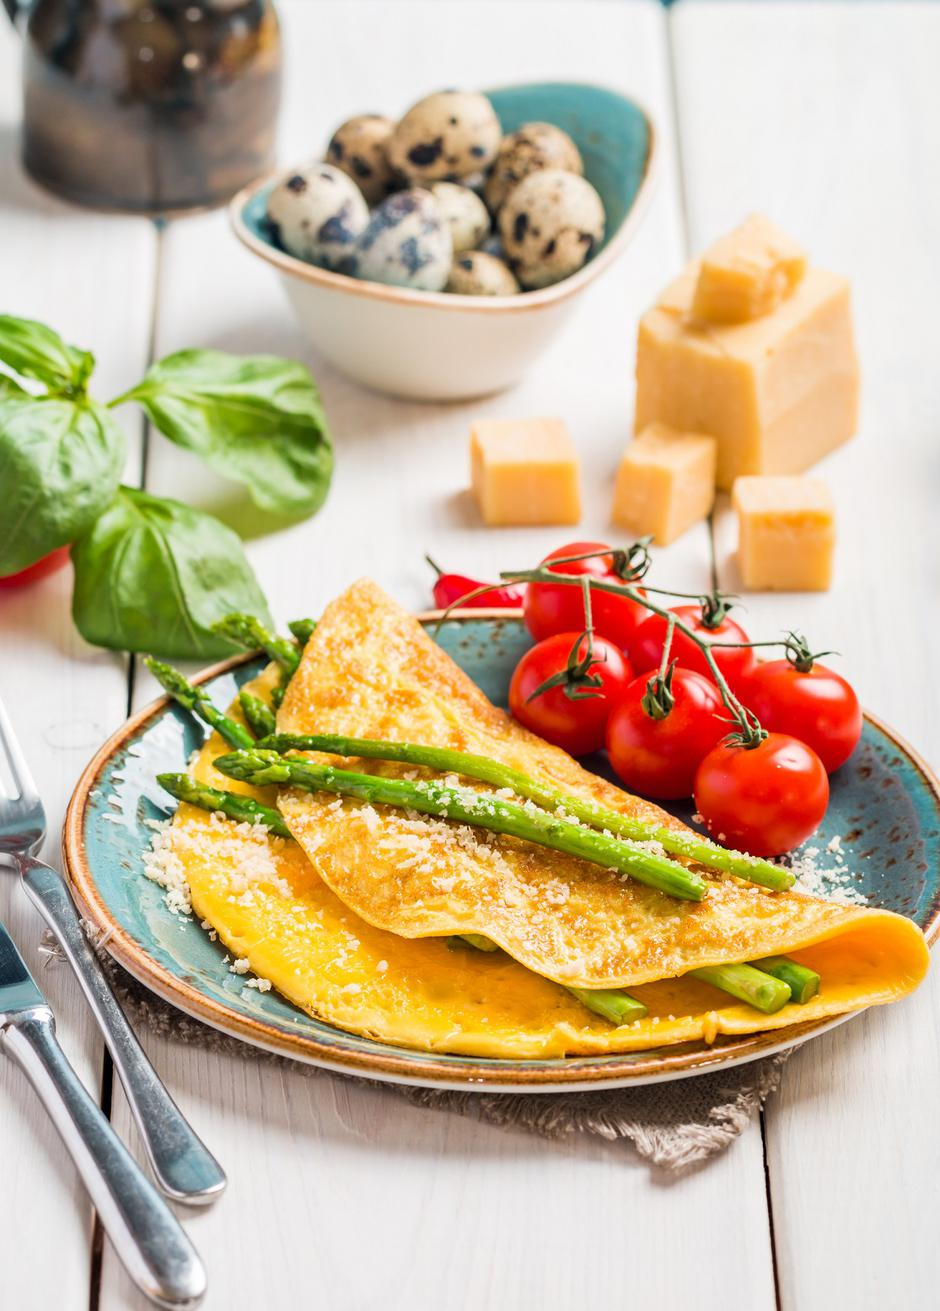 Scrambled eggs with asparagus  | Autor: Dreamstime